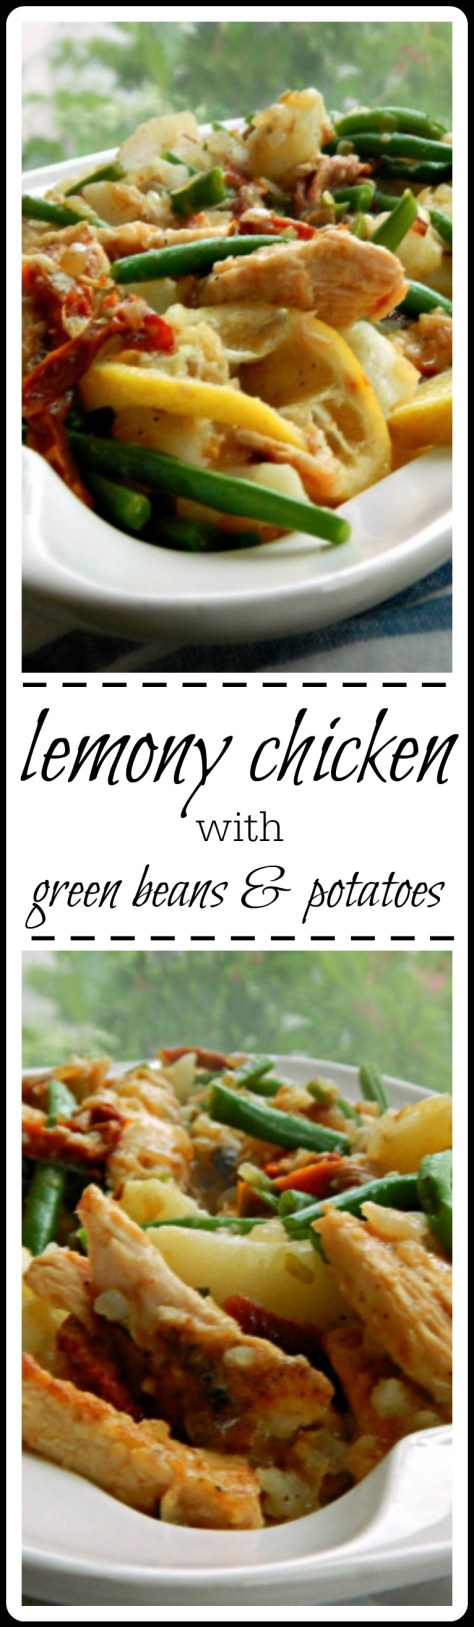 Lemony Chicken with Green Beans - simple enough for every day; elegant enough for company! There are potatoes, too, making it a complete meal. Try it with artichokes in the spring!